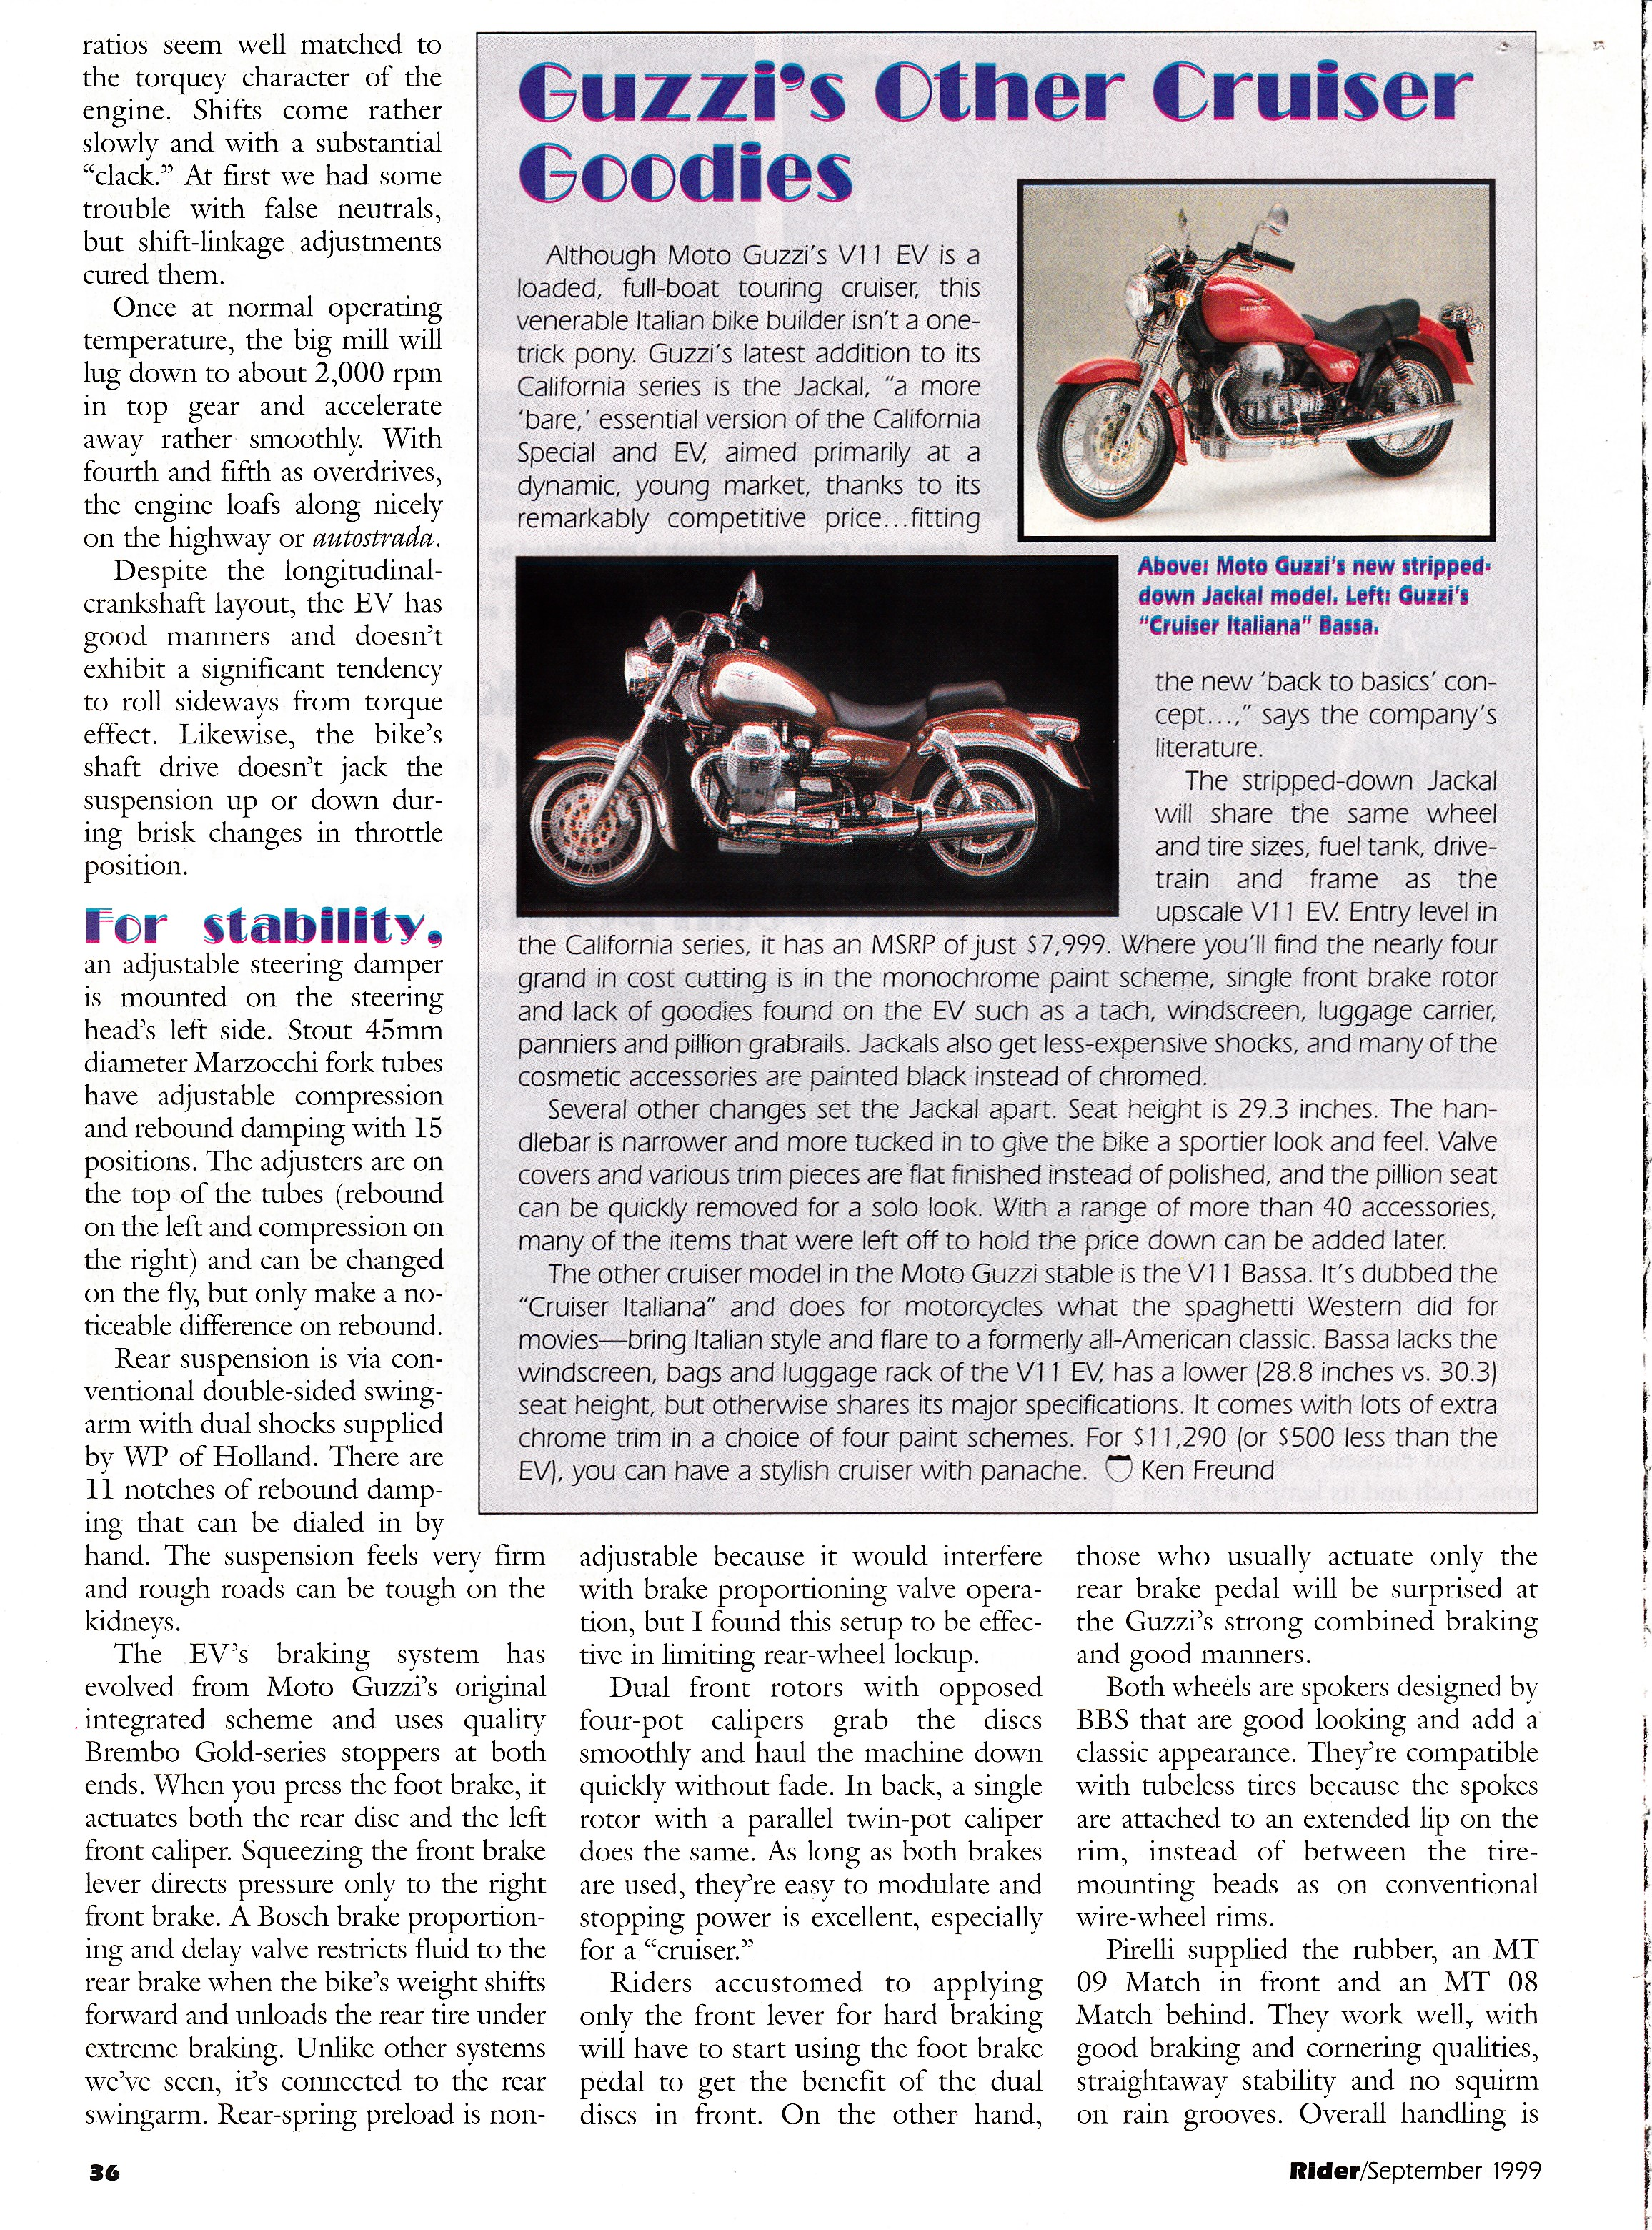 Article - Rider (1999 September) La bella macchina: The 1999 Moto Guzzi California V11 EV.